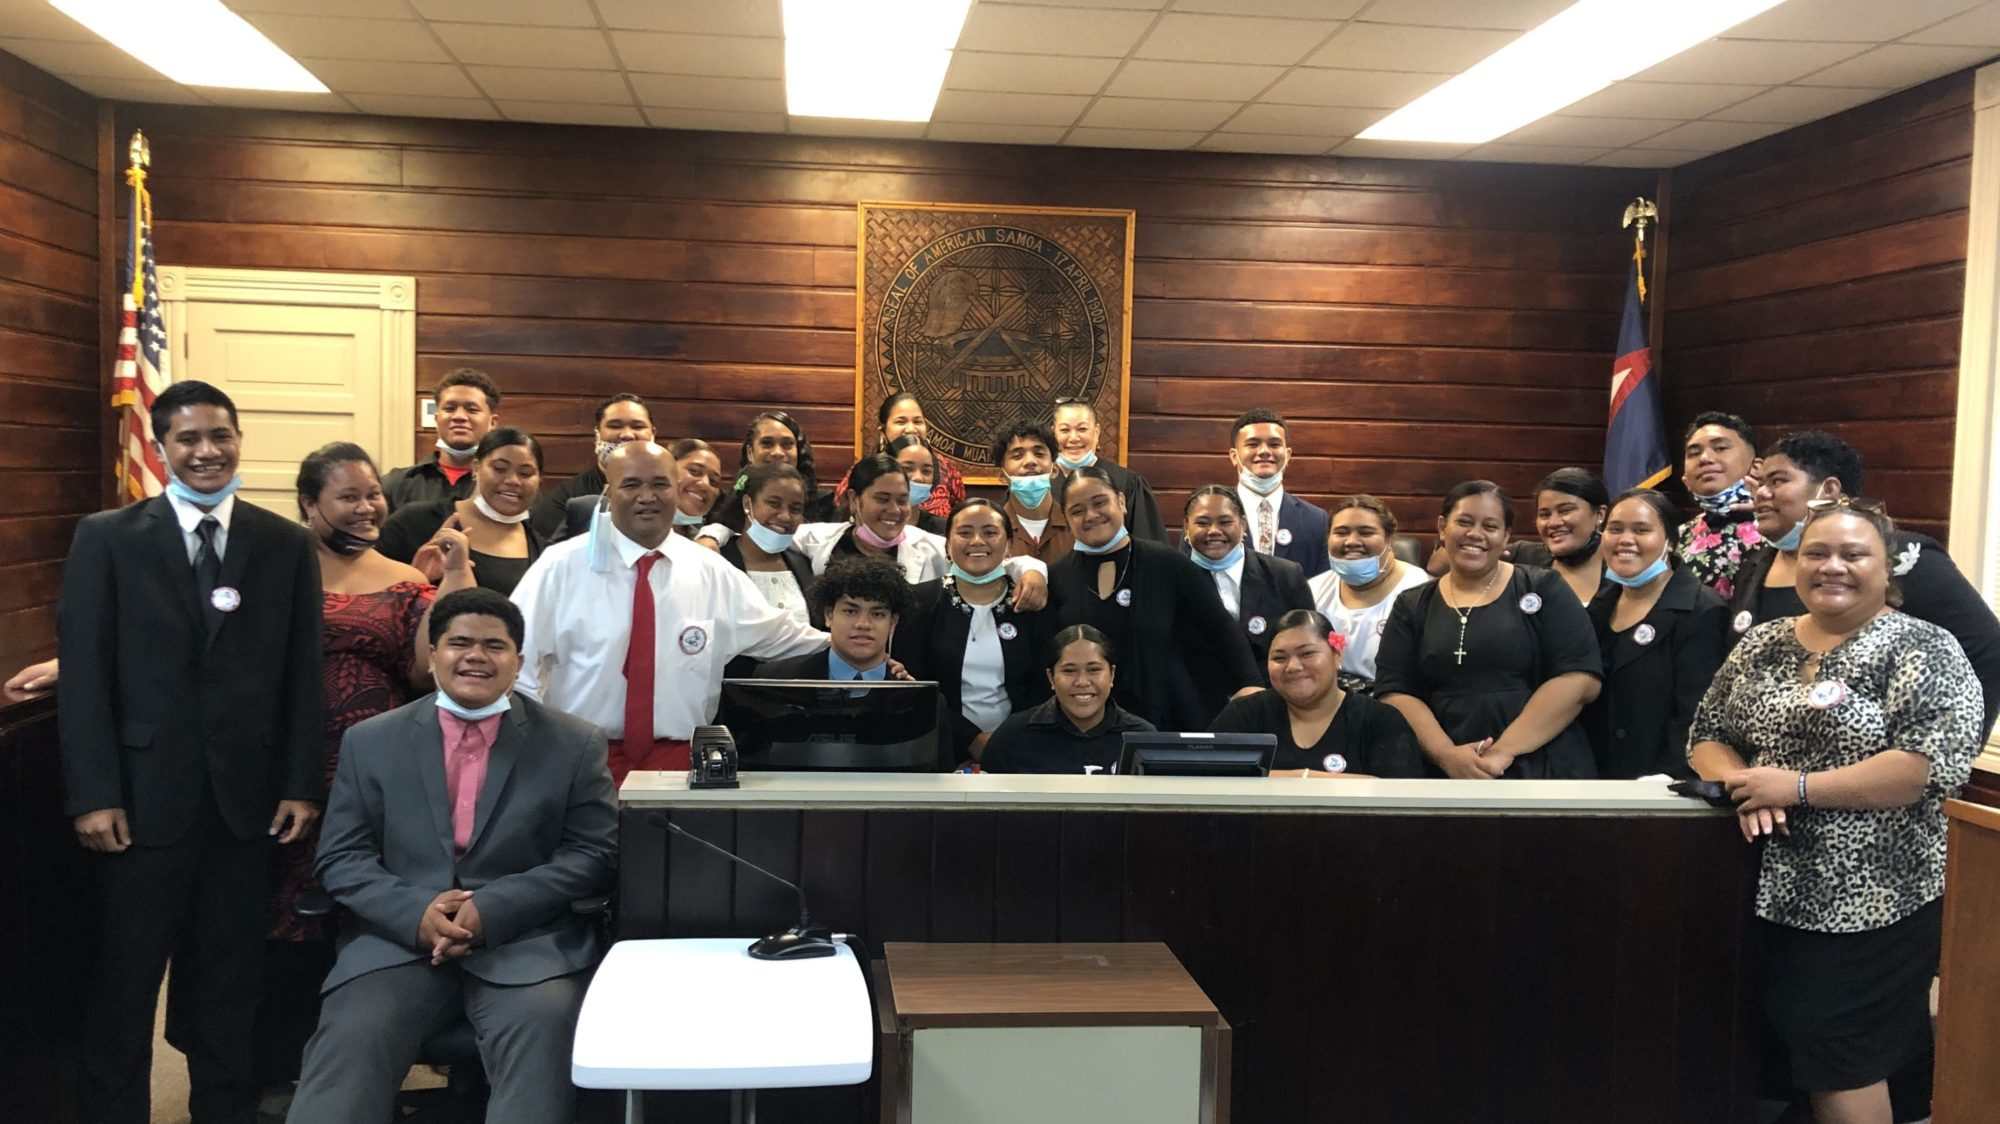 Mitzie Jessop-Taase (back row, right), former attorney general of American Samoa, helped a group of high school students stage a mock trial in the High Court of American Samoa, with the assistance of two Furman alumnae.